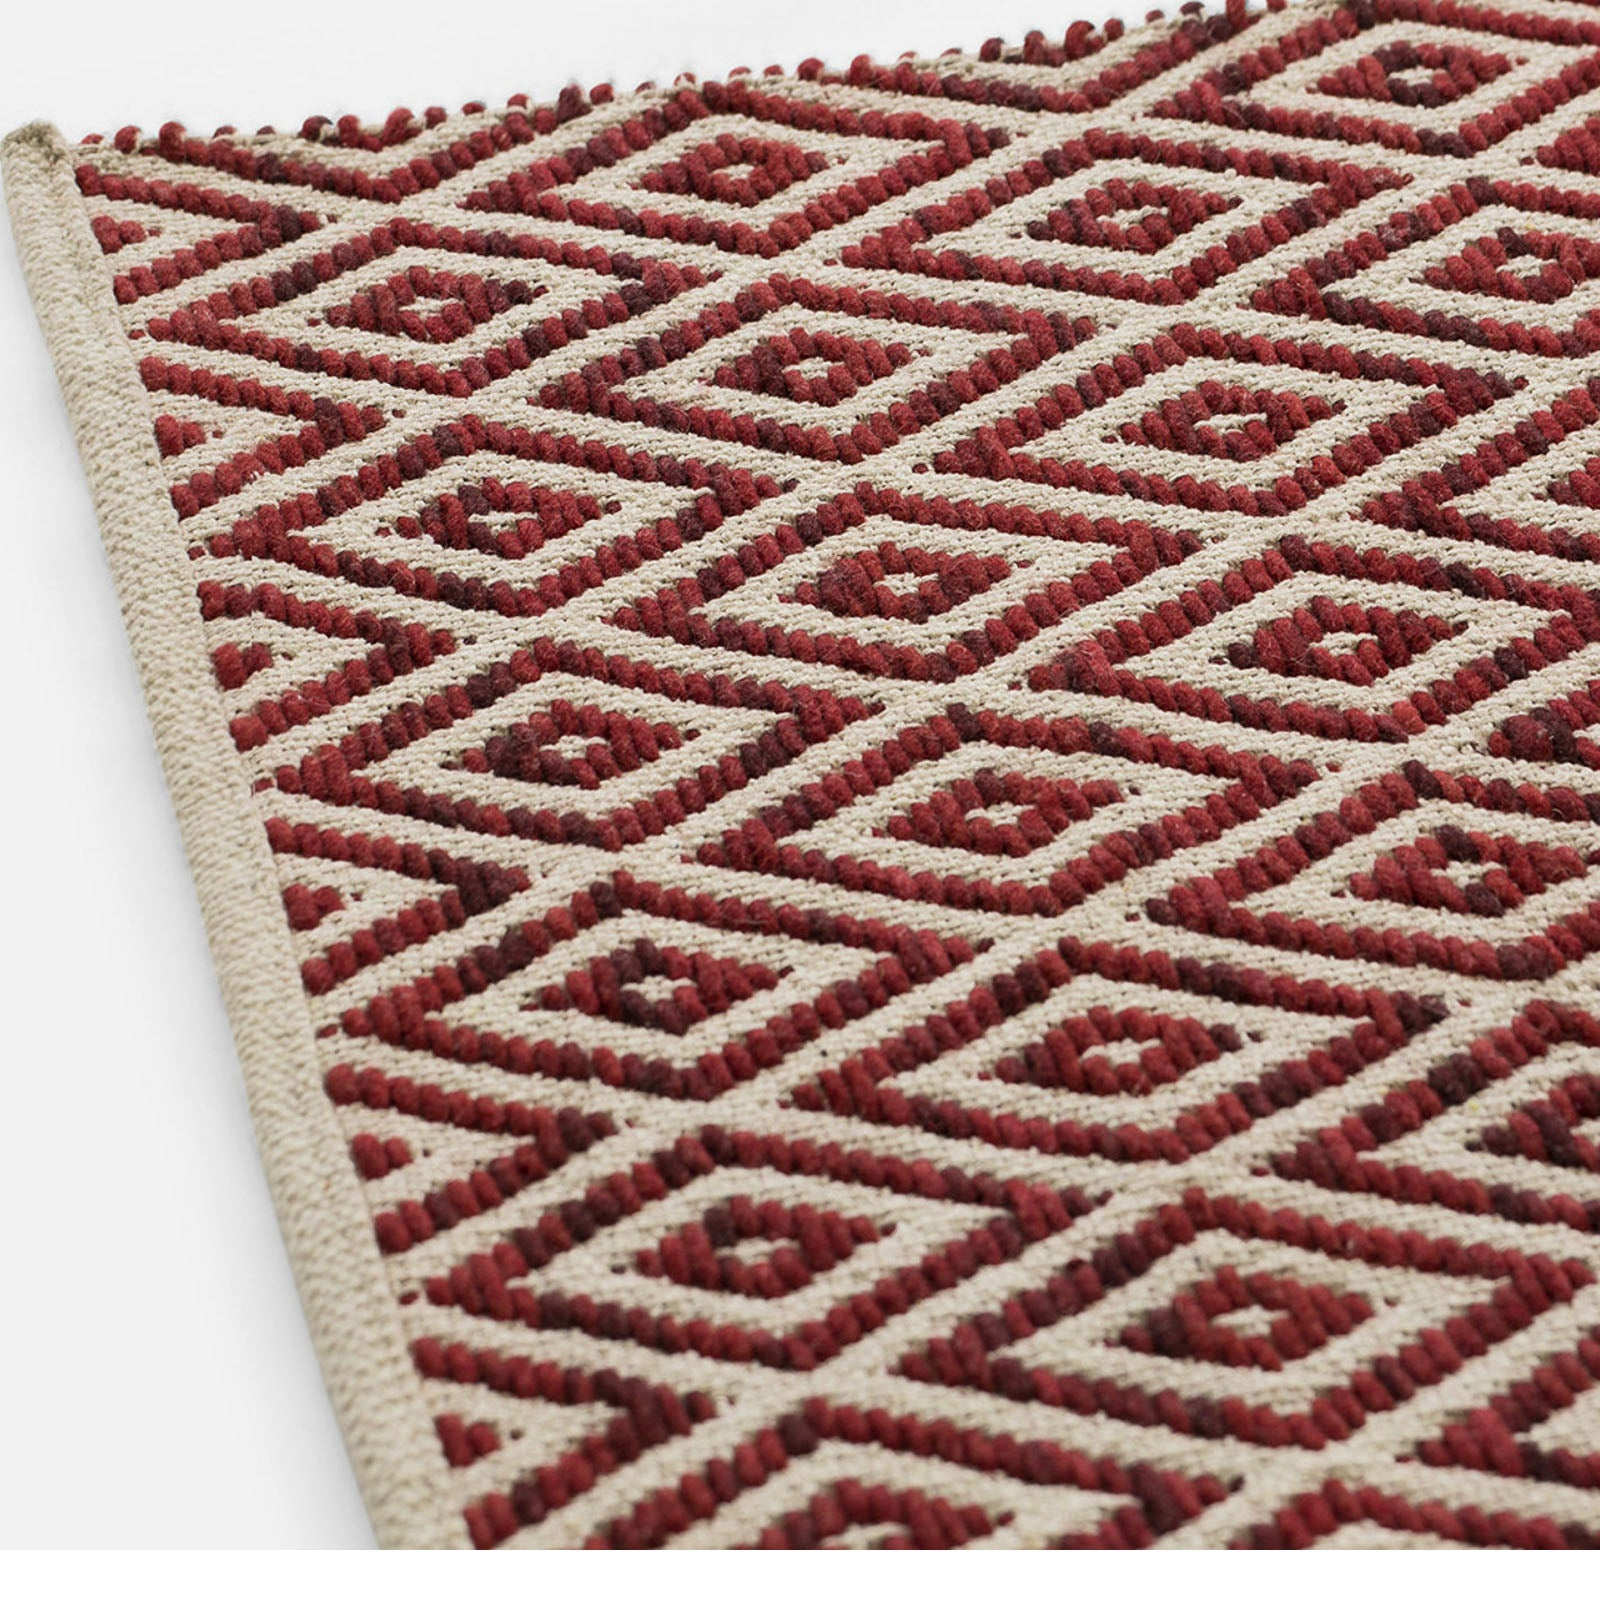 90x300  cm HANDMADE WOOL rug Caterina-Red-Long -  90x300 سجادة صوف صناعة يدوية سم - Shop Online Furniture and Home Decor Store in Dubai, UAE at ebarza